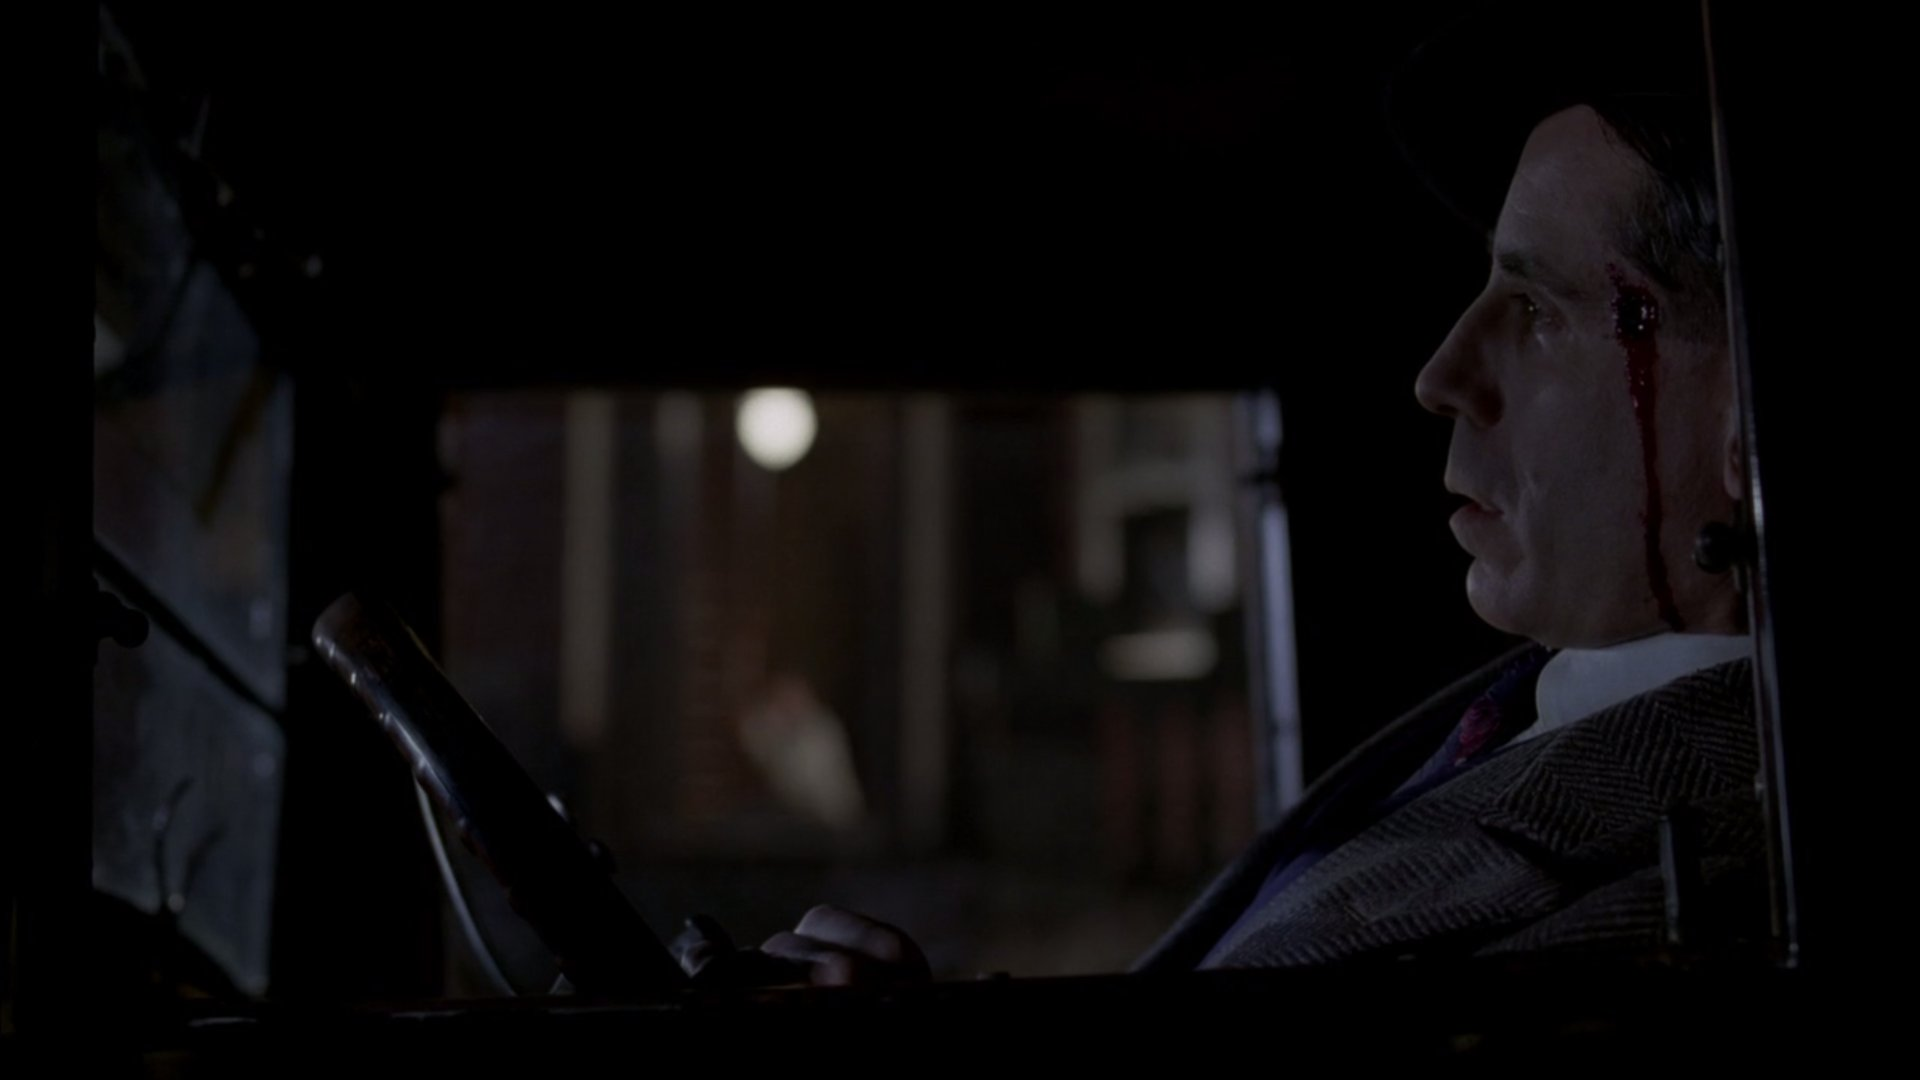 Boardwalk Empire - 03x01 - Resolution cap 4